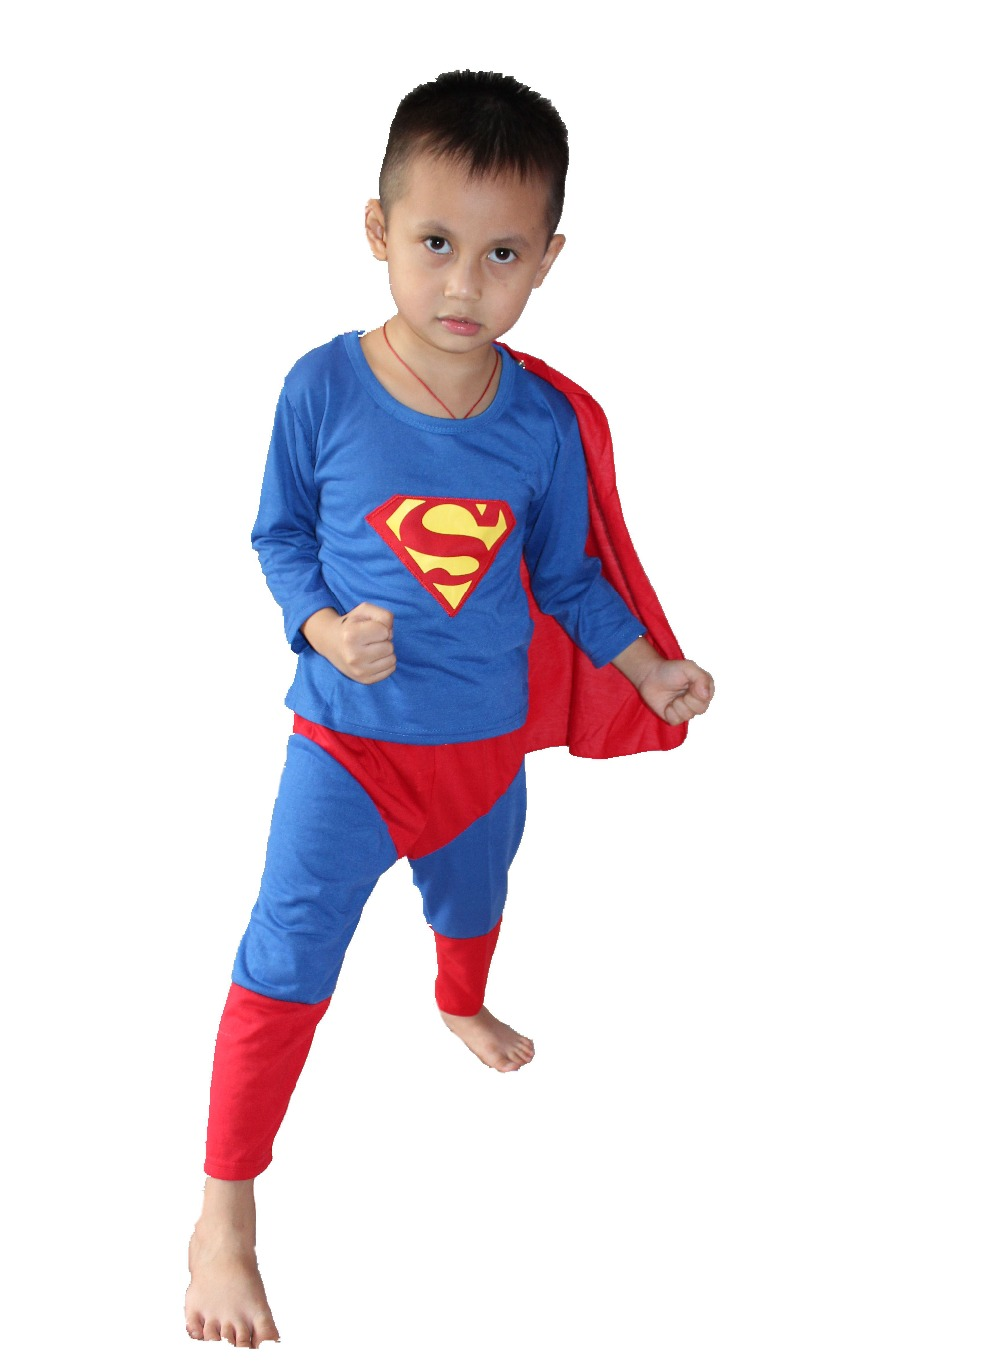 trgovina na drobno - Halloween Party kostumi Hallowmas 3 - 7 let otroški superman Igra oblačila / Boy superman kostum Cosplay majica